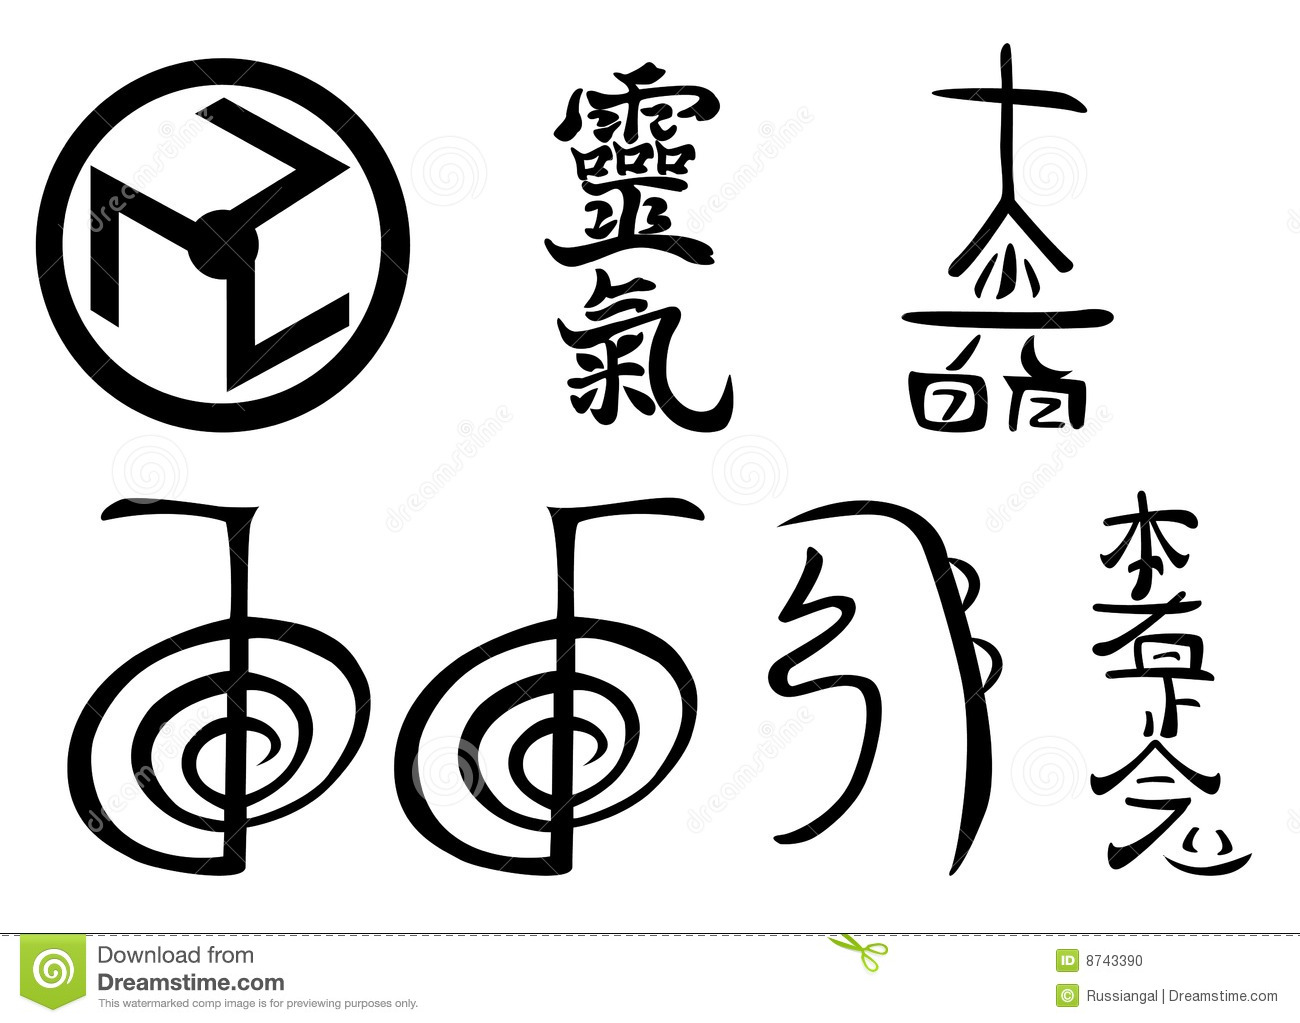 Reiki Symbols Stock Vector Illustration Of Illustrations 8743390